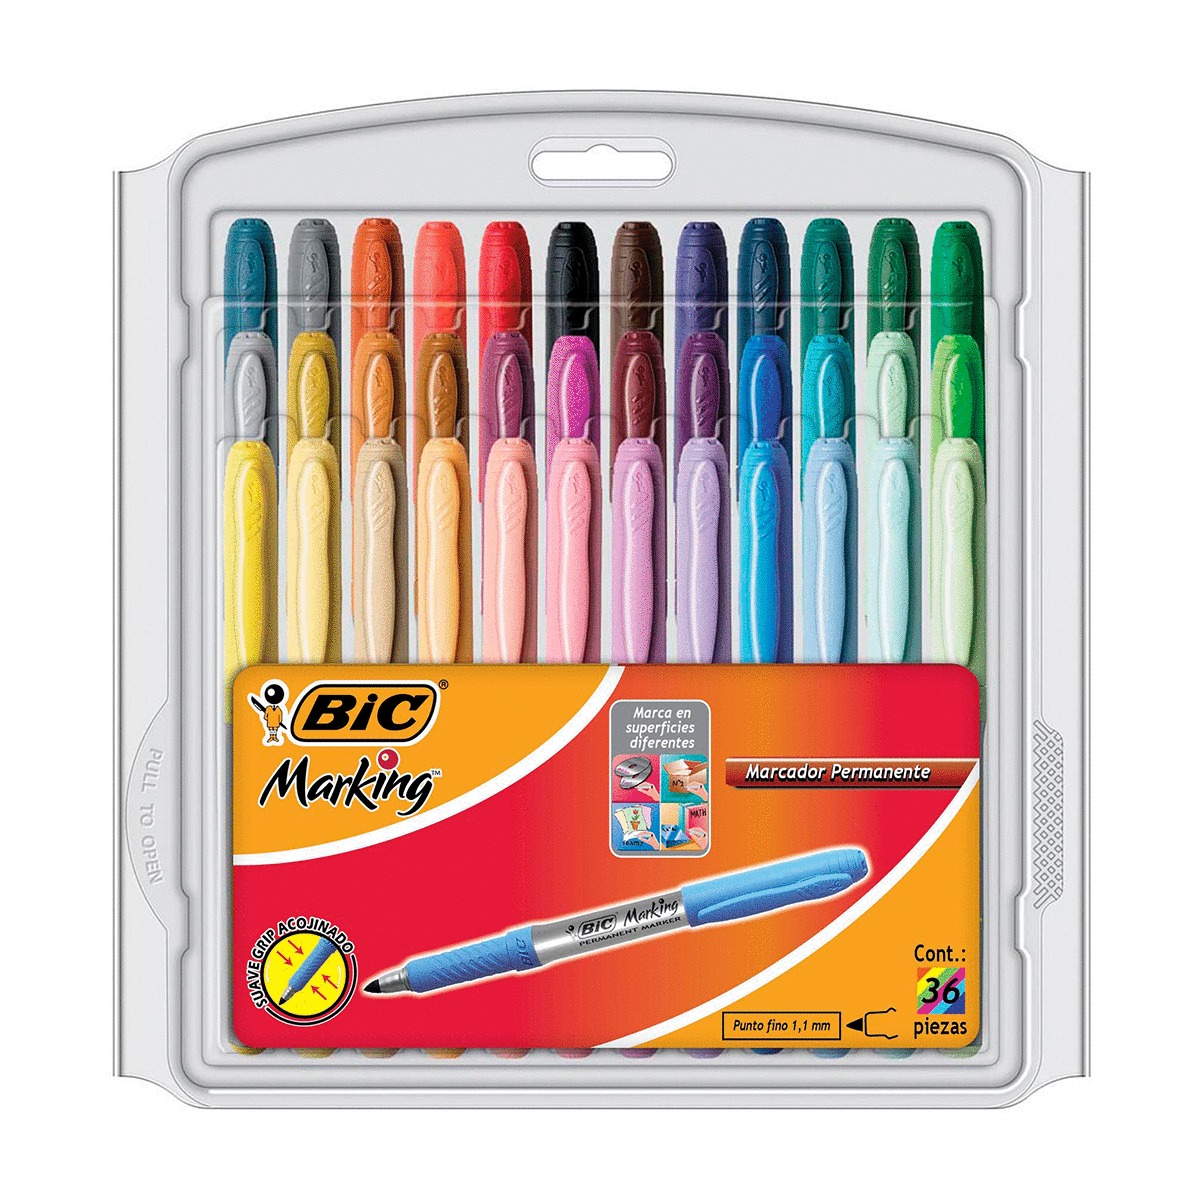 MARCADOR PERMANENTE BIC MARKING (COLORES, 36 PZS.)